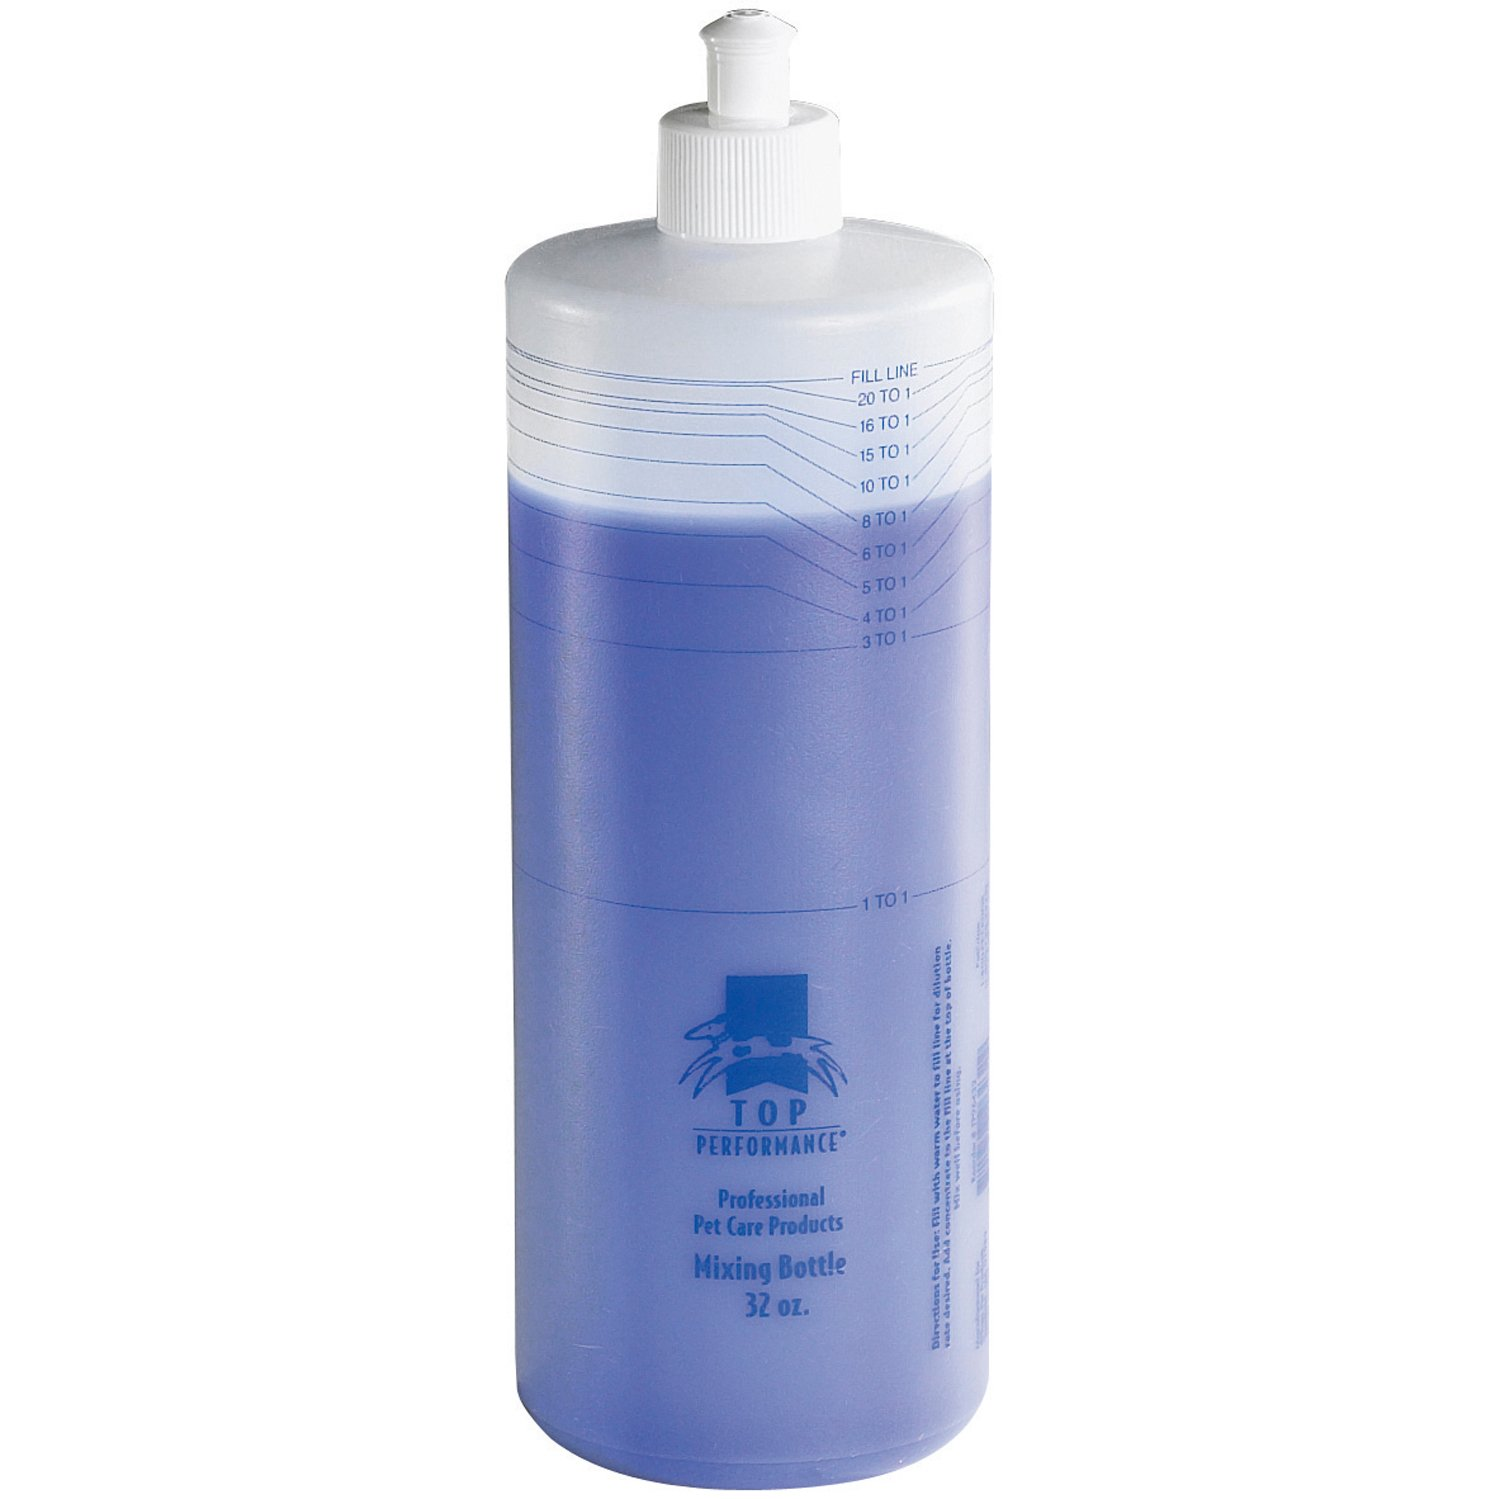 Top Performance Pet Professional Mixing Shampoos, 32-Ounce Bottle by Top Performance (Image #5)